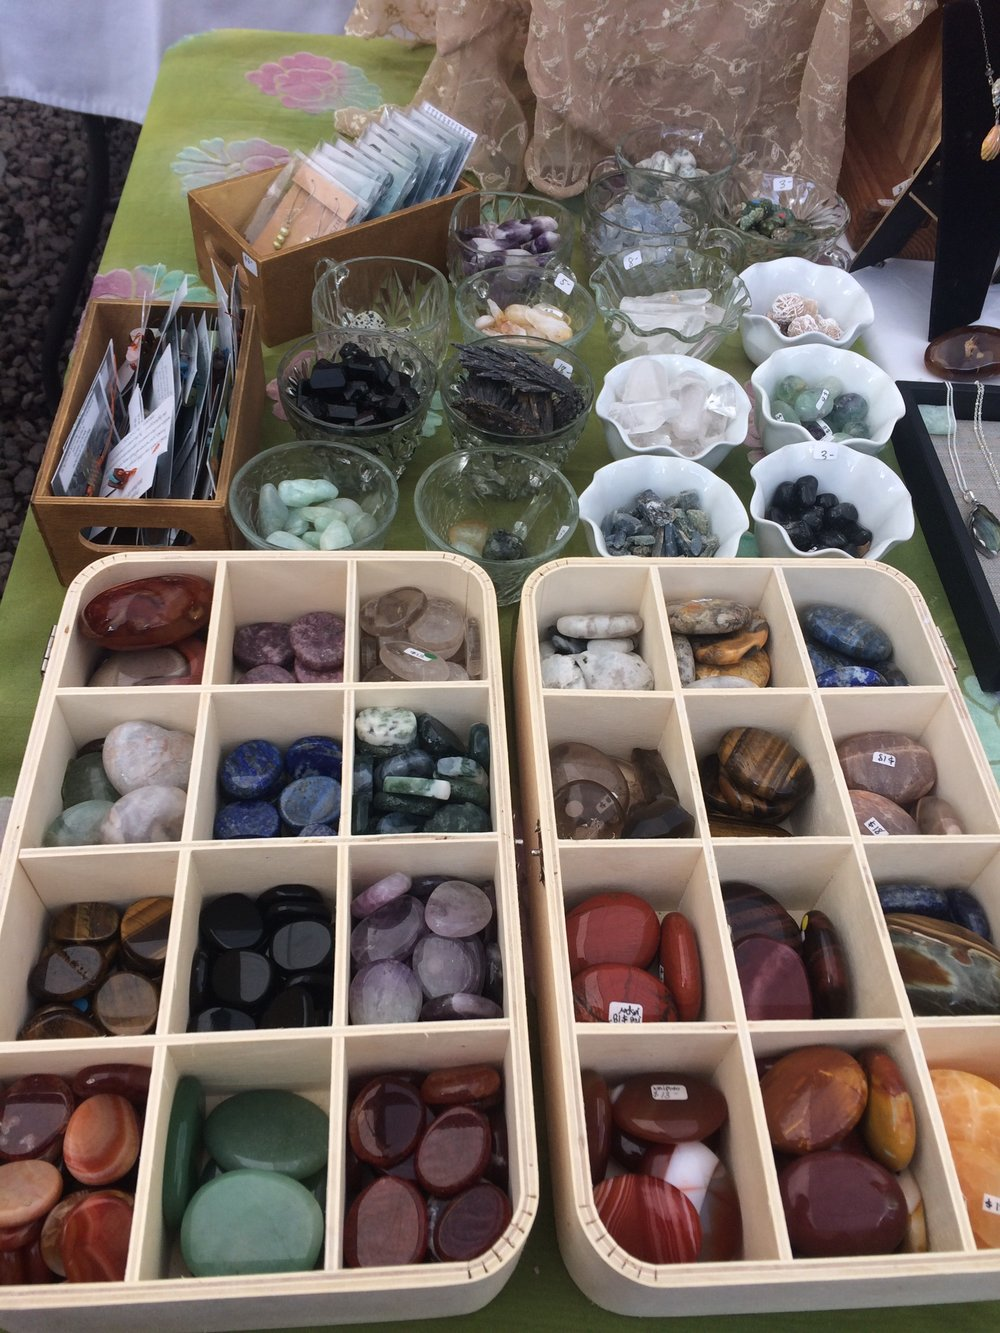 Crystals, meditation stones, blessing and gratitude stones, reiki infused